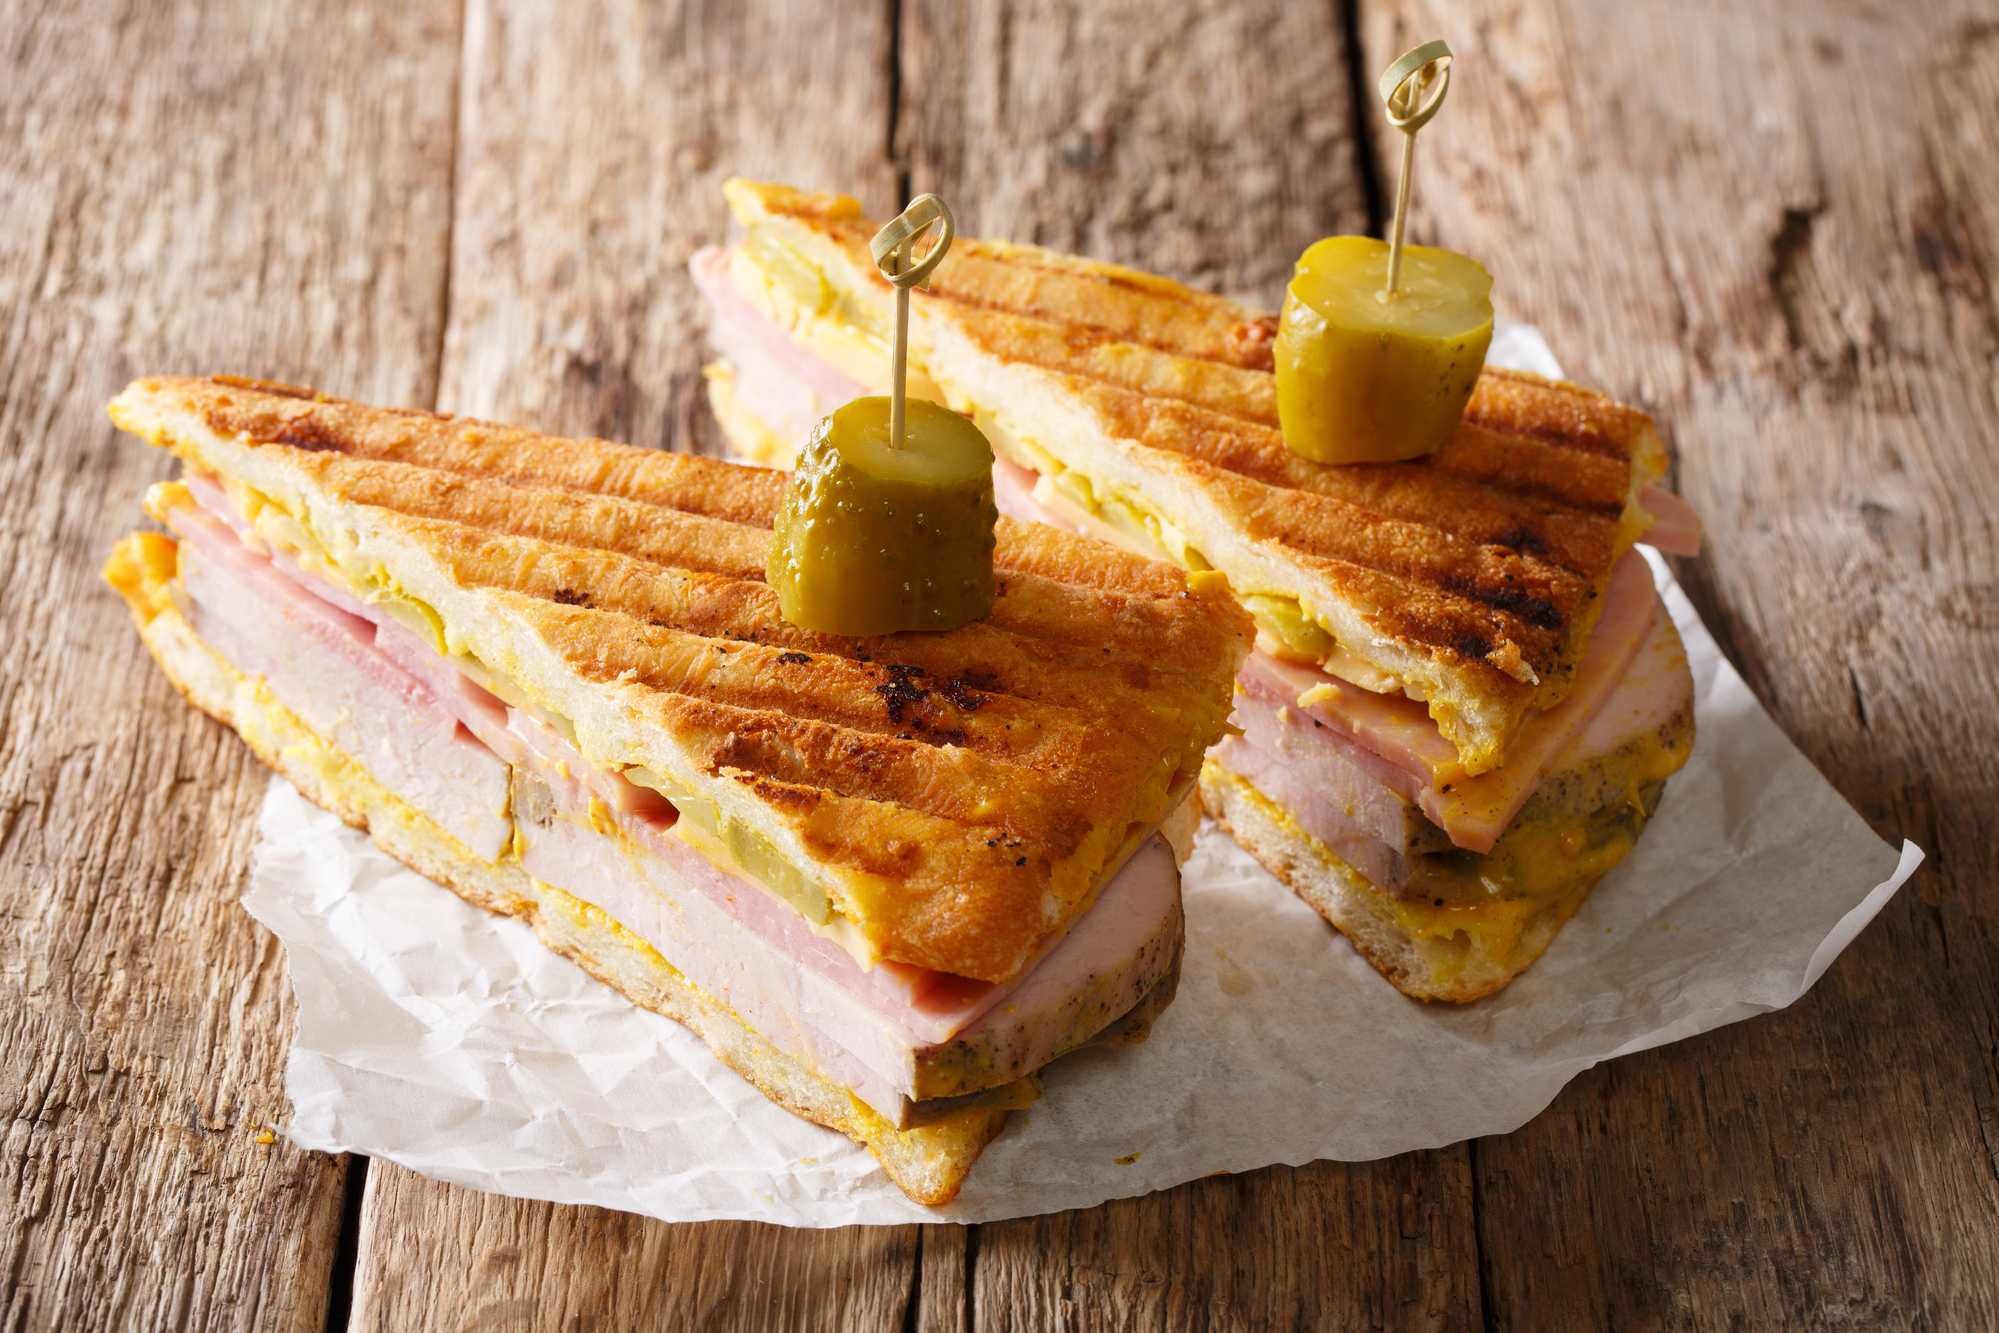 The Best Cuban Sandwich Restaurants in South Florida